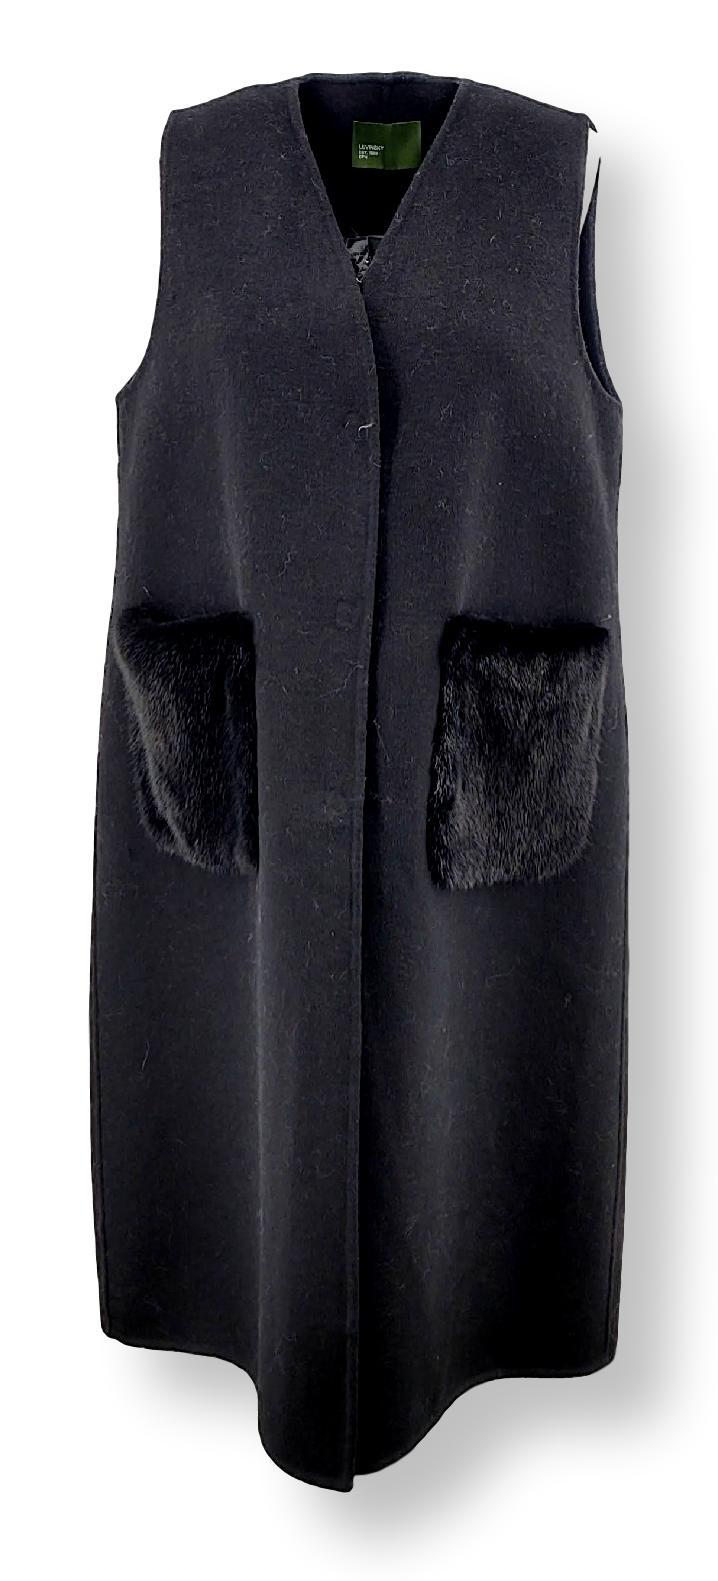 Clichy West, 104 cm. - Collar - Double Face Wool - Women - Black - Stampe Denmark